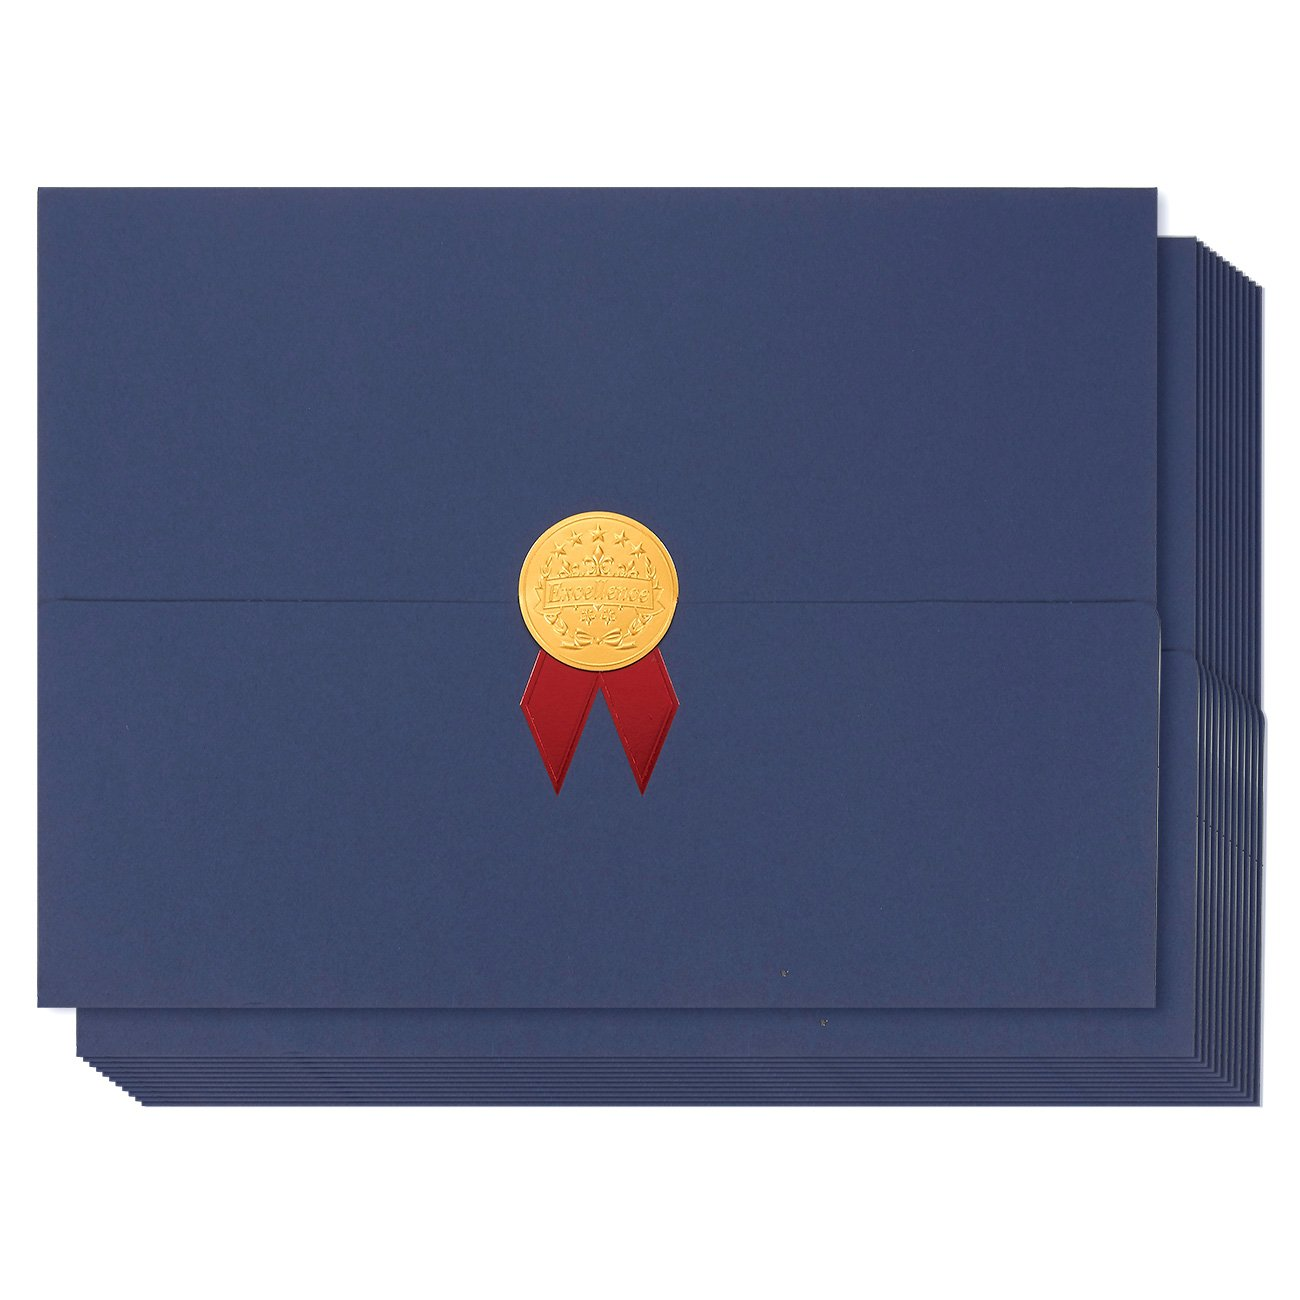 12-Pack Certificate Cover - Diploma Cover, Document Cover for Letter-Sized Award Certificates, Blue, Gold Foil, Red Bow, 12.5 x 9.2 inches